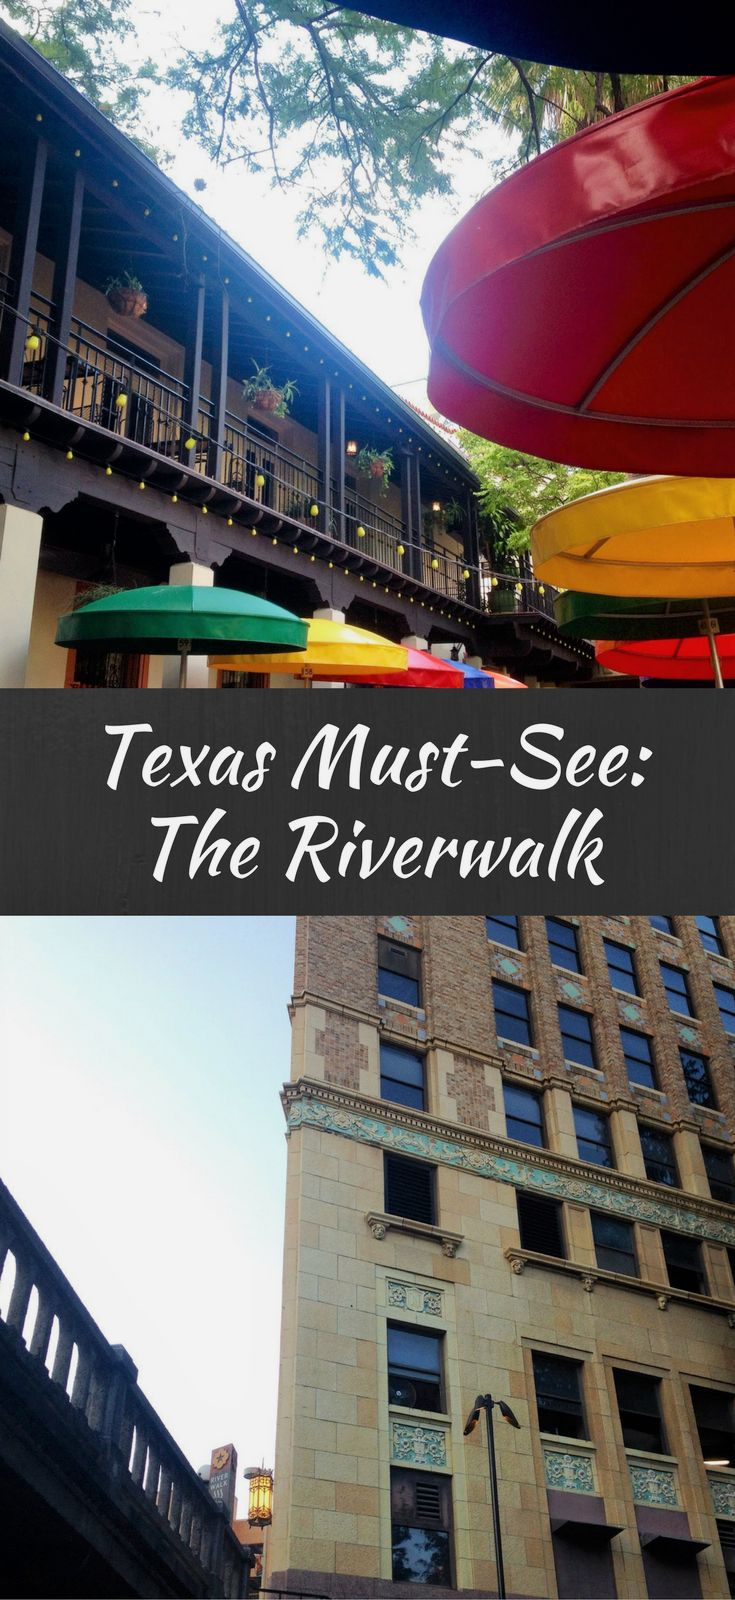 The San Antonio Riverwalk is a Texas Must-See. But if you are looking for the best restaurants in San Antonio, you can't miss the one that's right on the city's most popular attraction and the more offbeat spot a little further out.